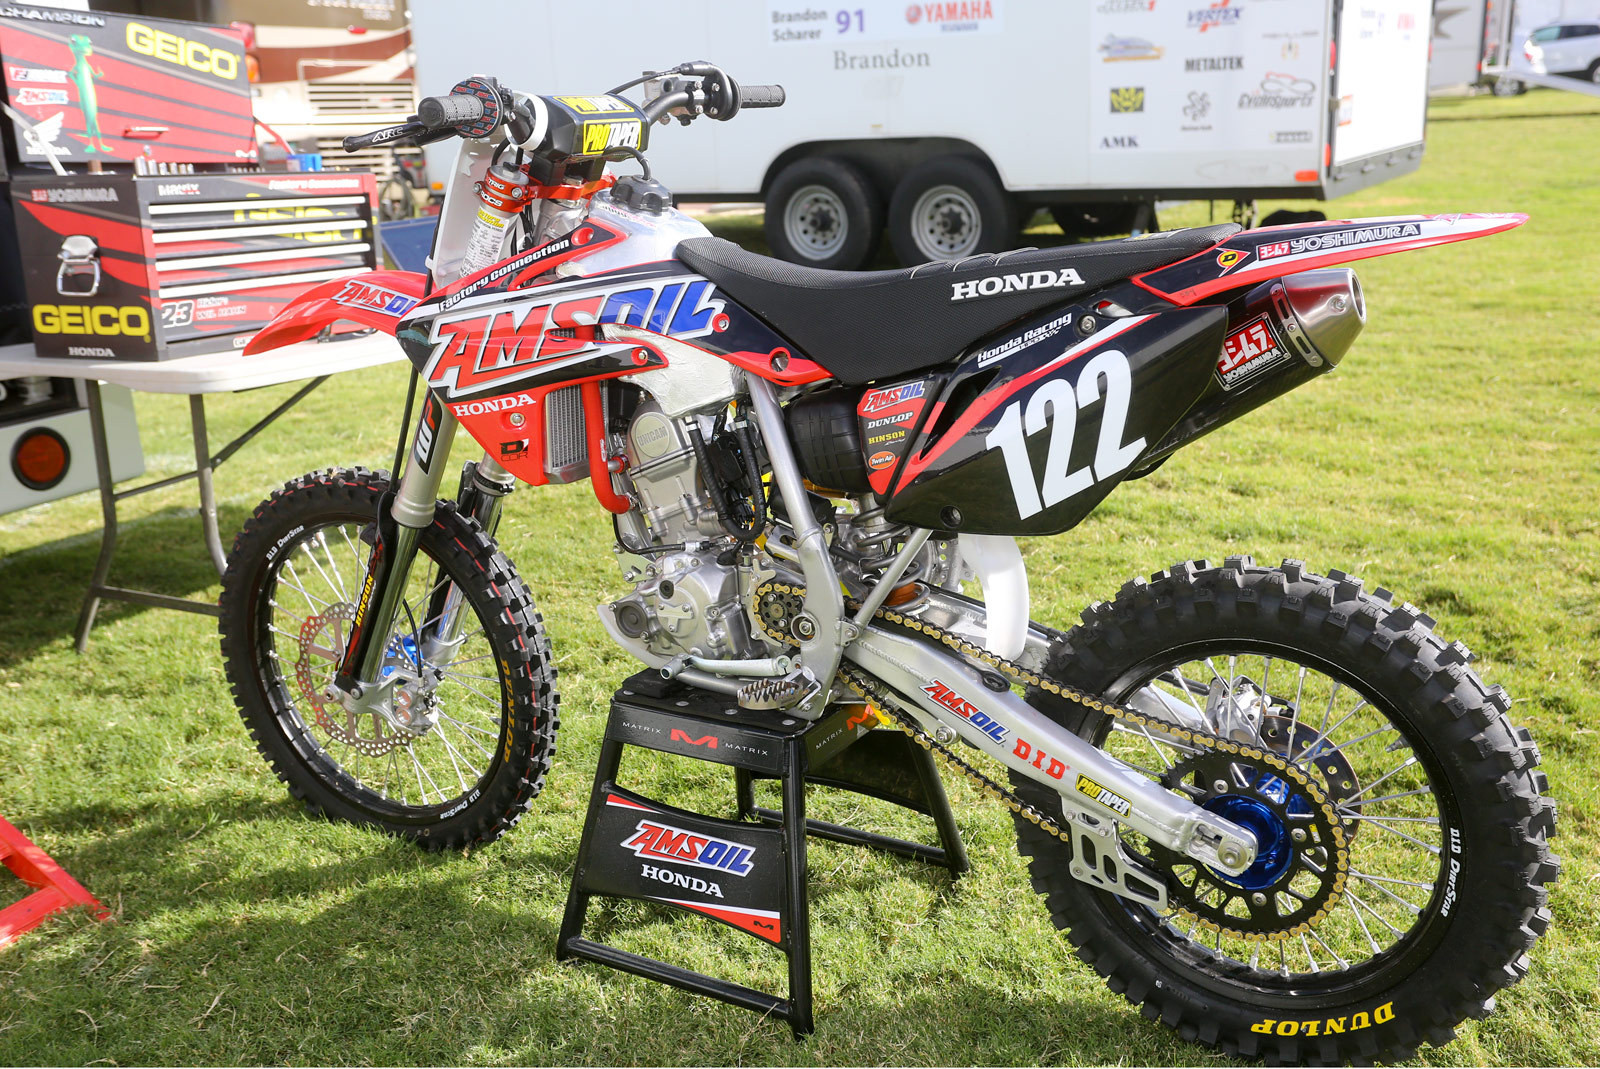 Carson Mumford's Amsoil/Factory Connection Honda CRF150R - Vital MX Pit Bits: 2016 Monster Energy Cup - Motocross Pictures - Vital MX